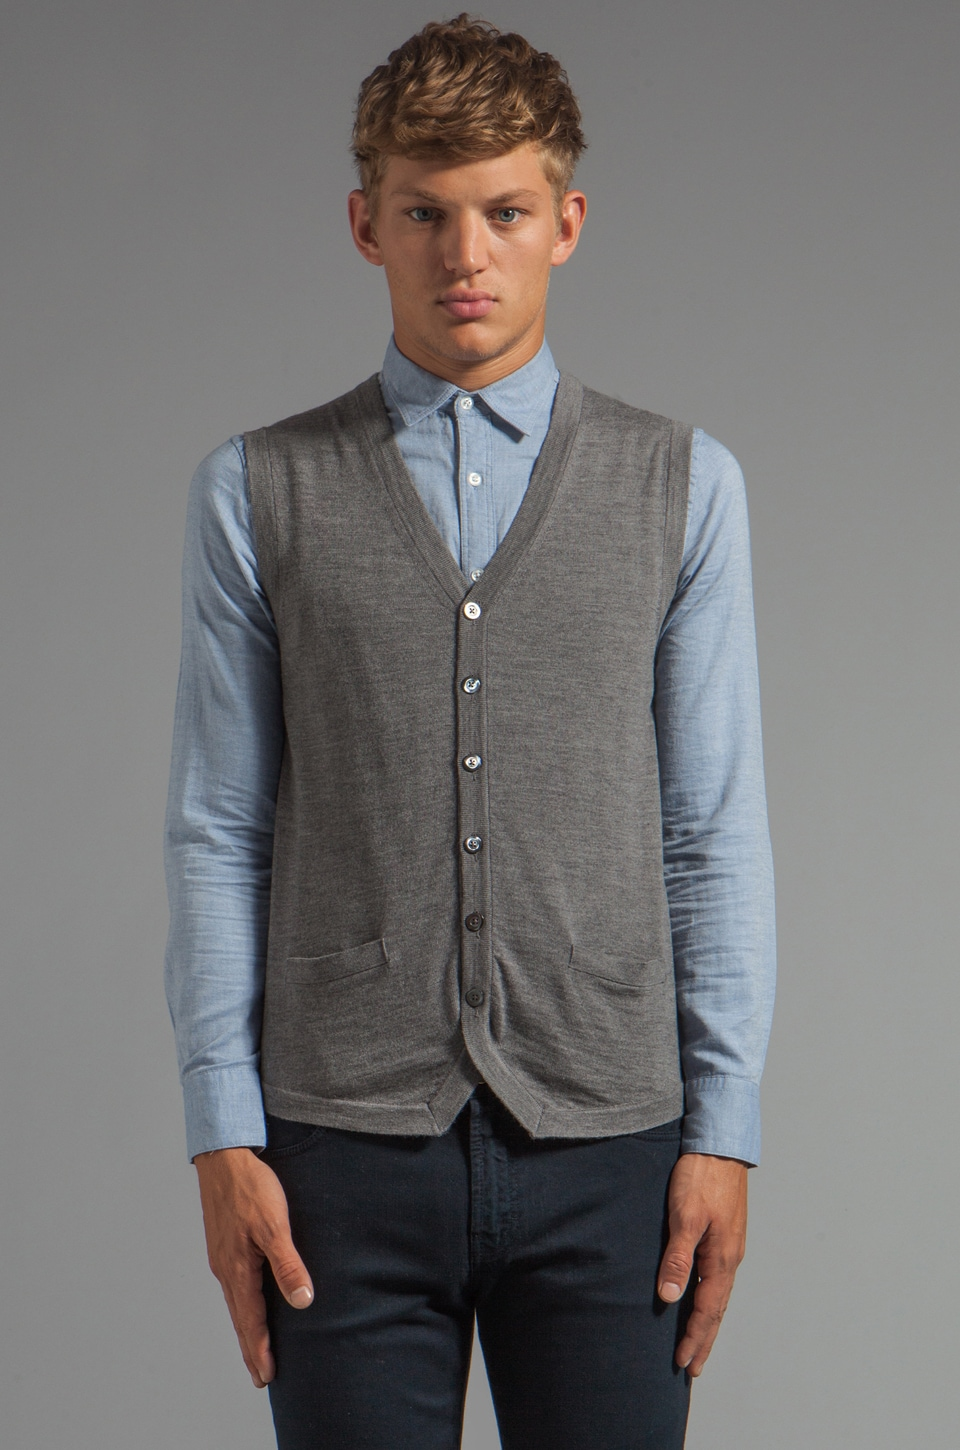 J. Lindeberg Nestor Sweater Vest in Grey Melange